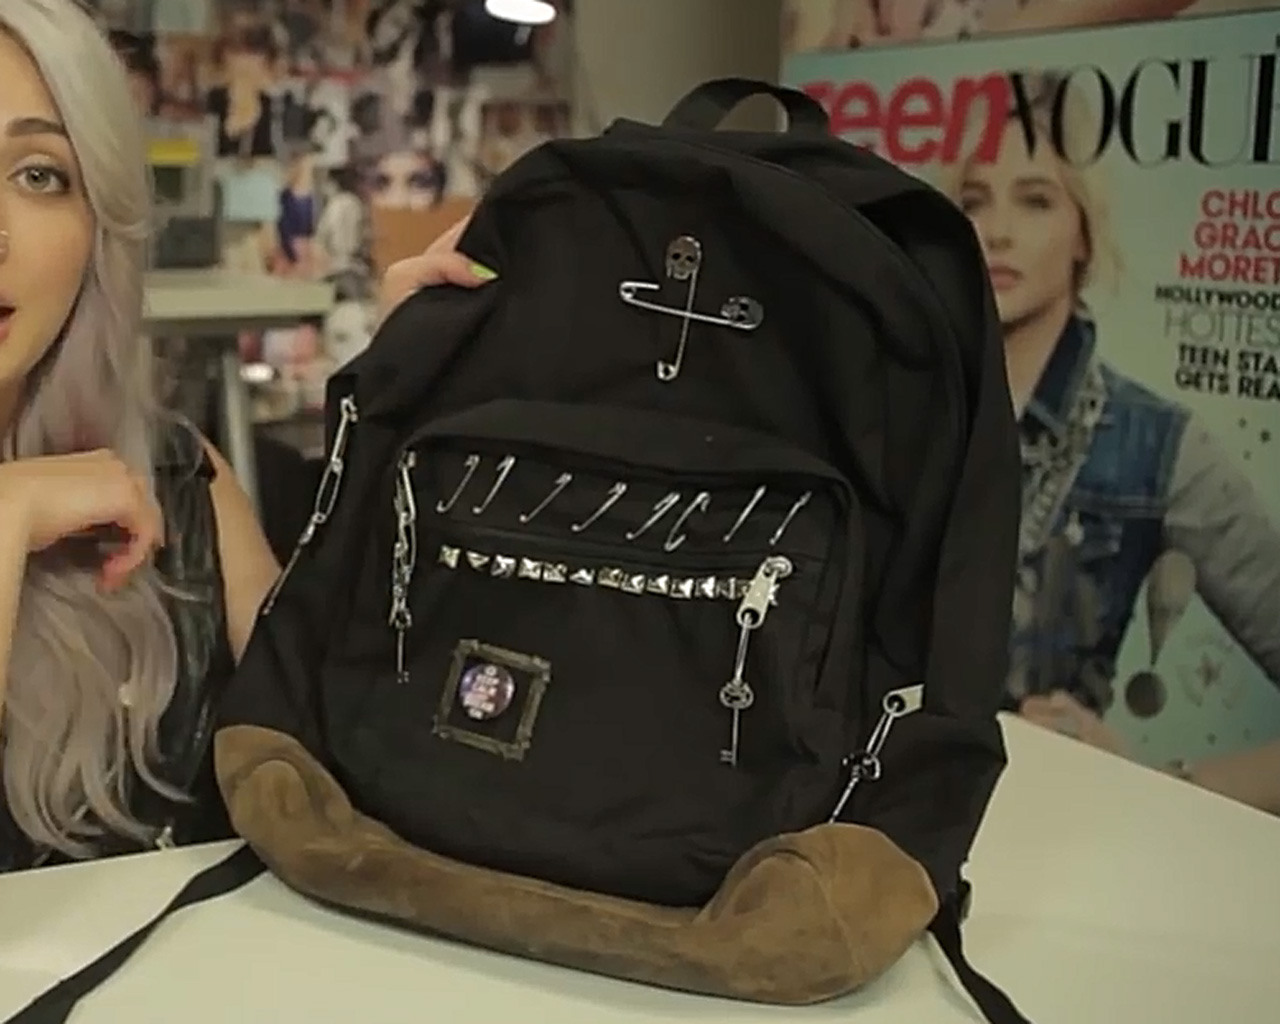 DIY customized backpack | Sheknows.com